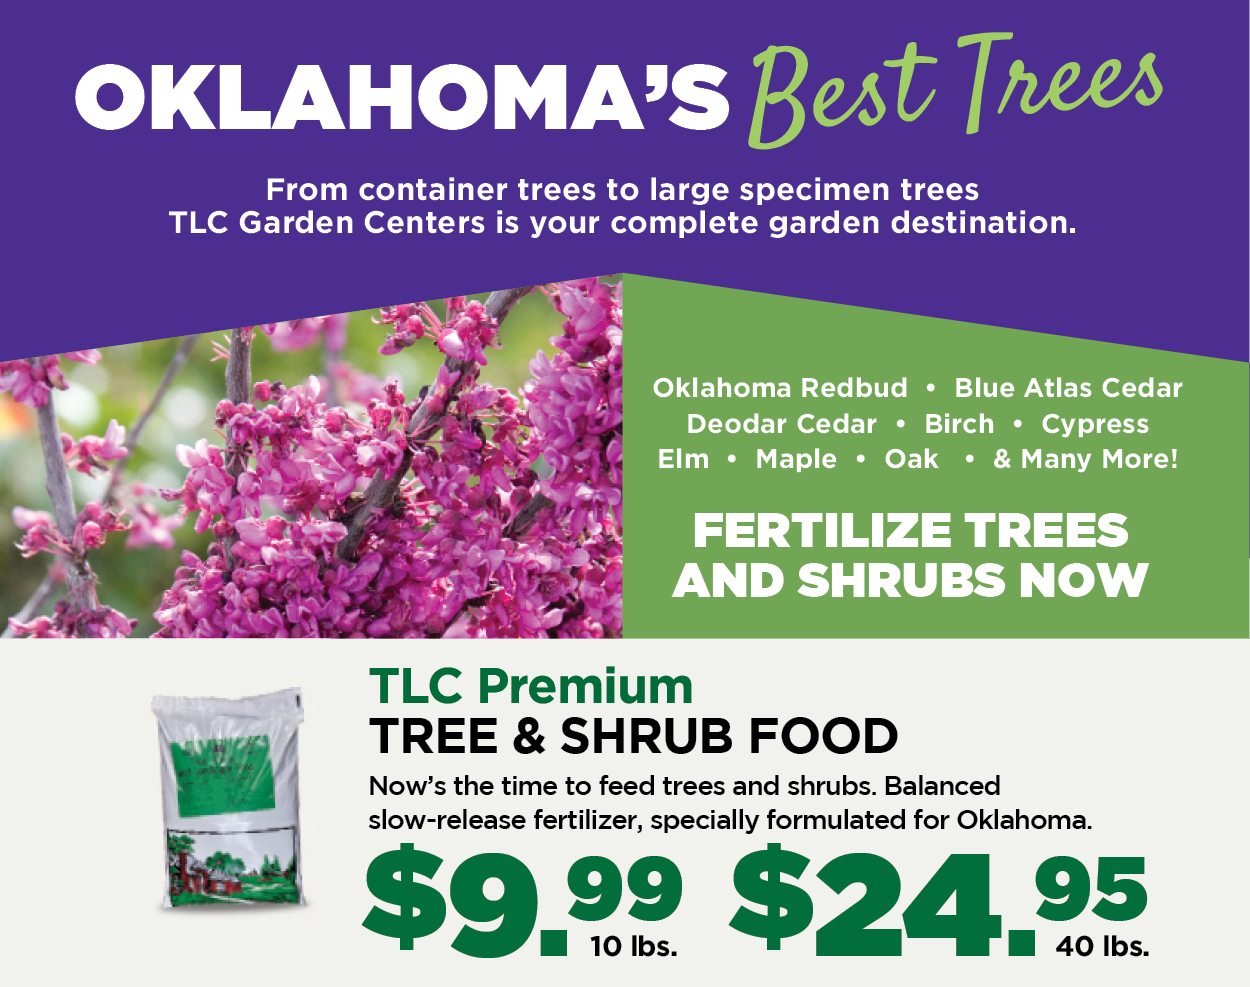 Oklahoma's Best Trees